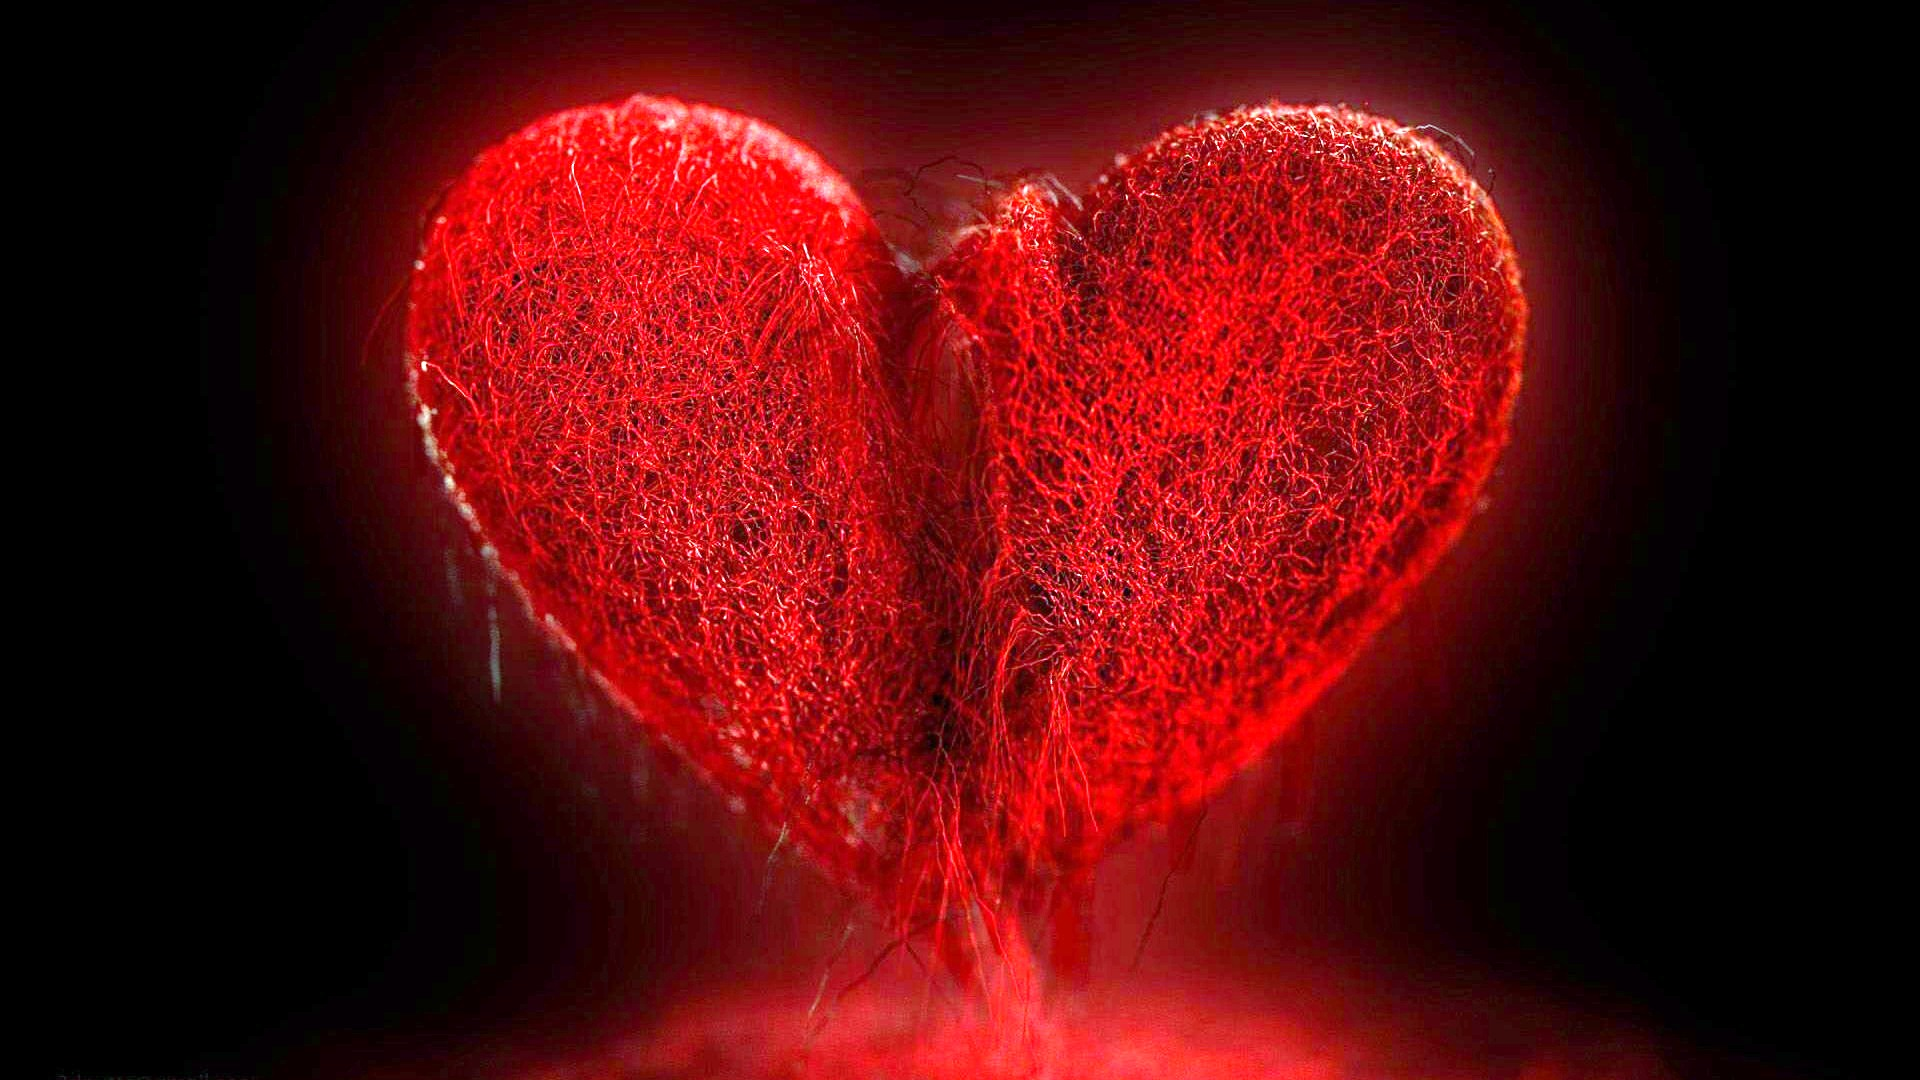 Heart wallpapers high quality download free - Sad heart wallpapers love ...